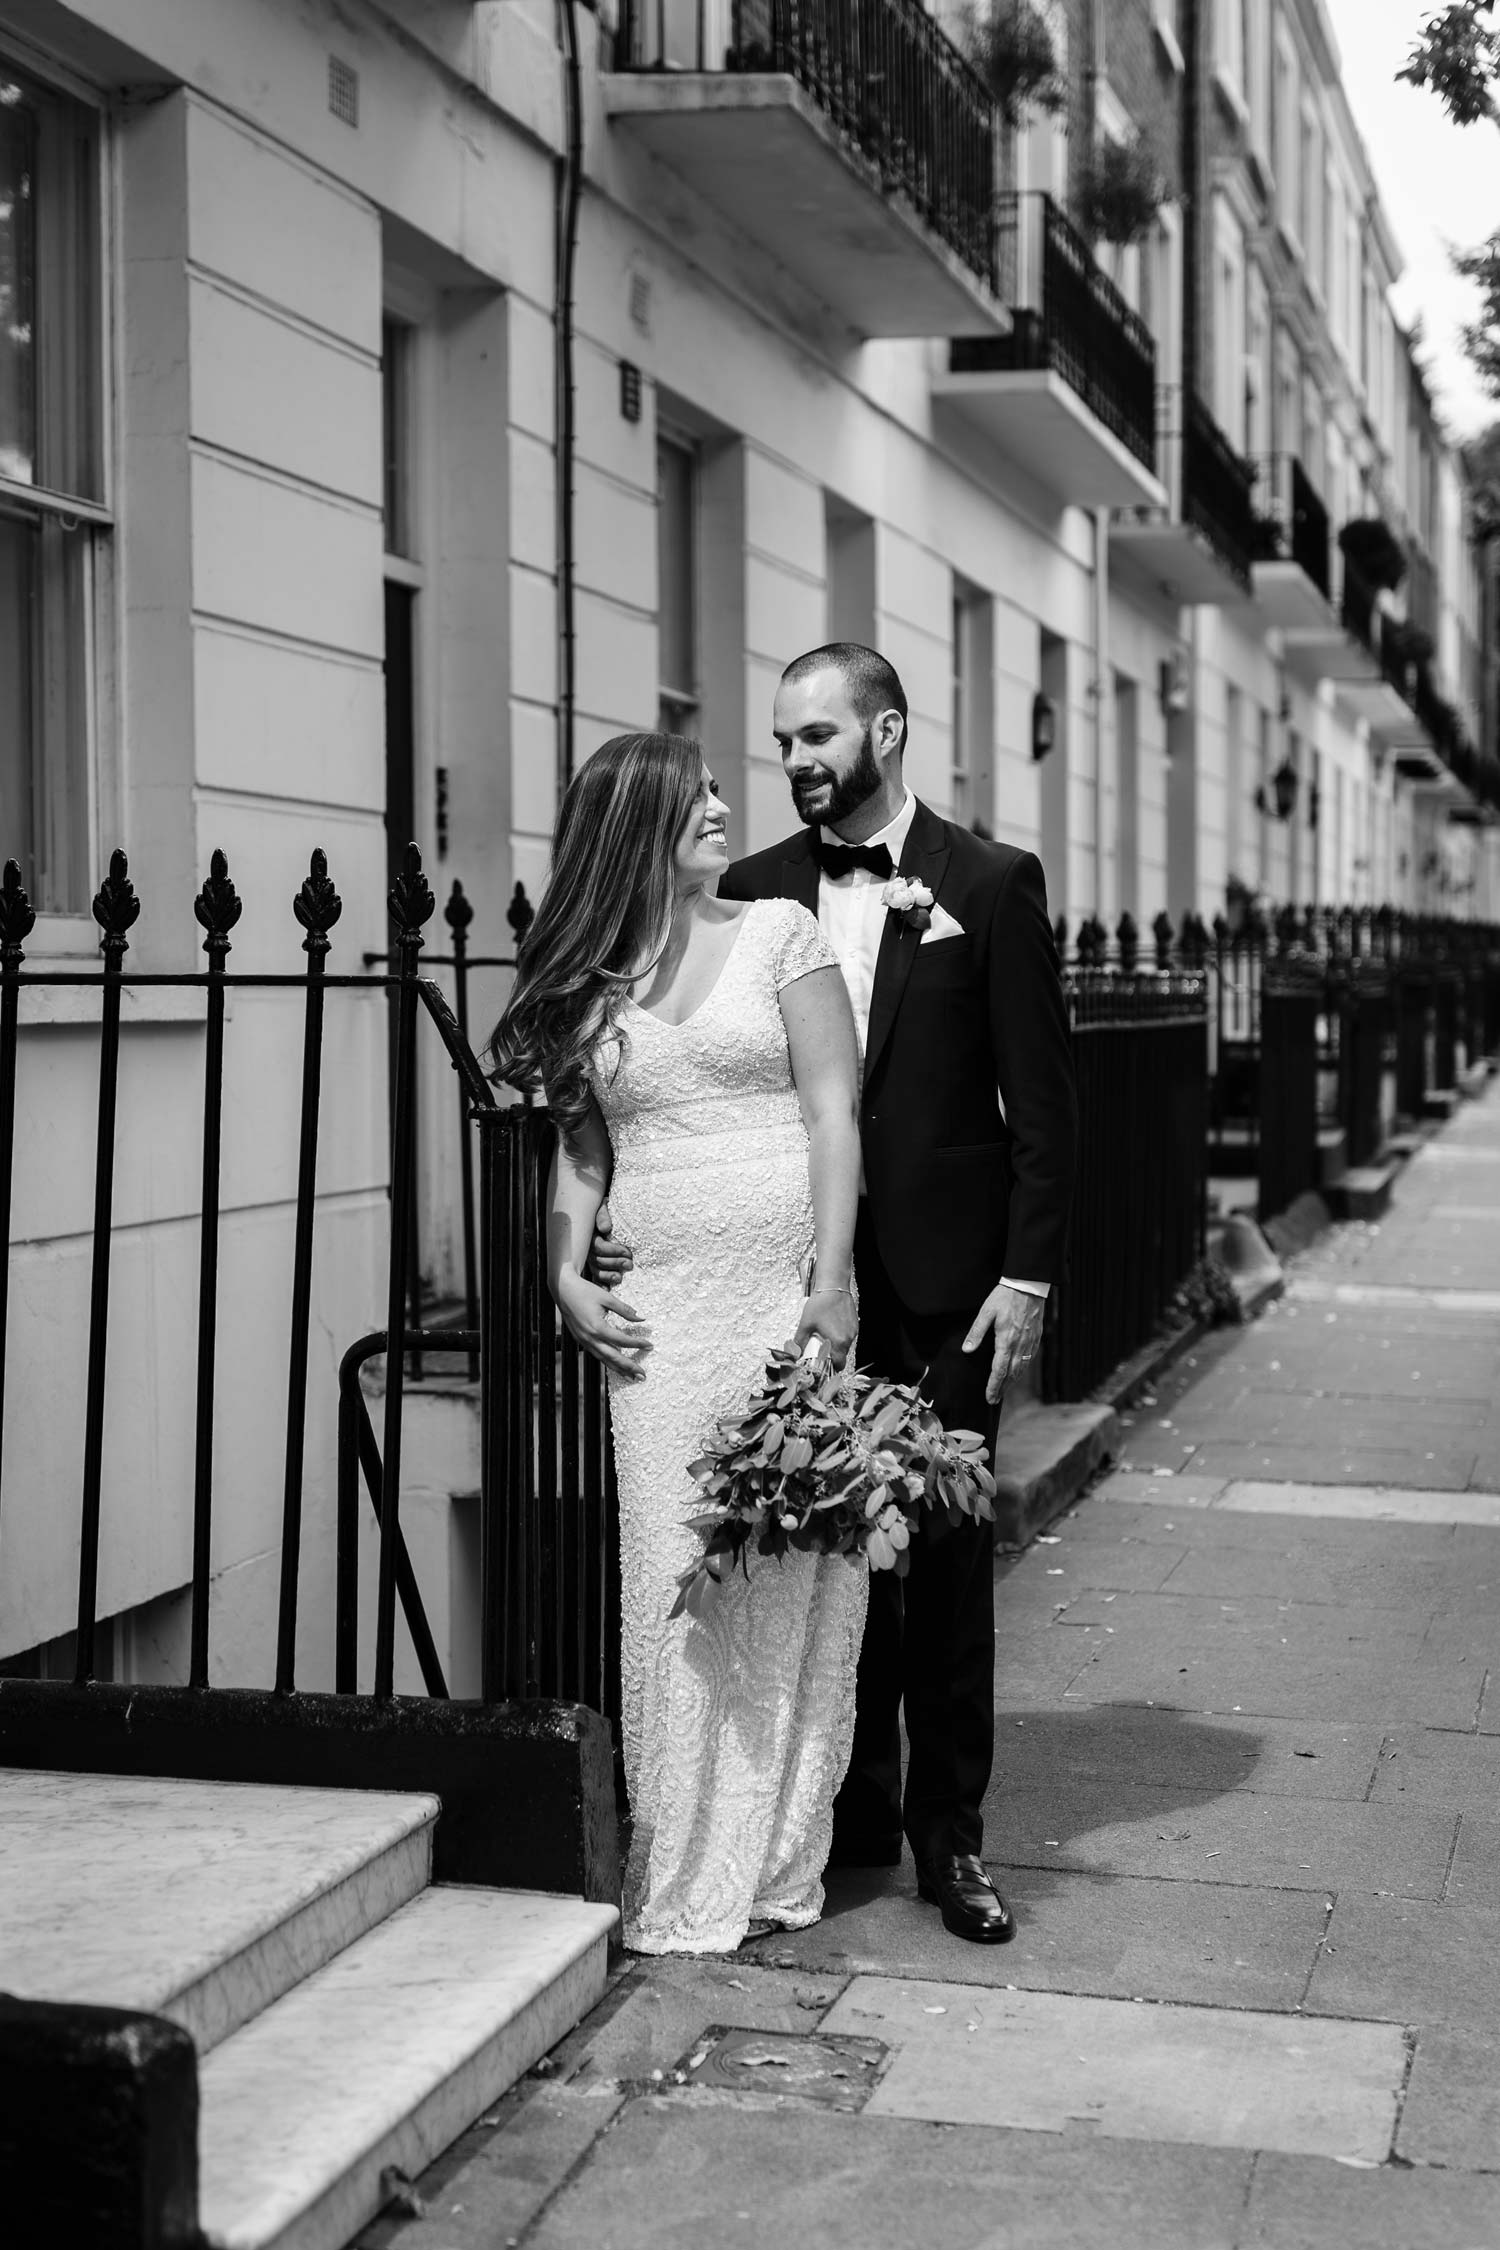 A couple get married at Asia House - London wedding photographer